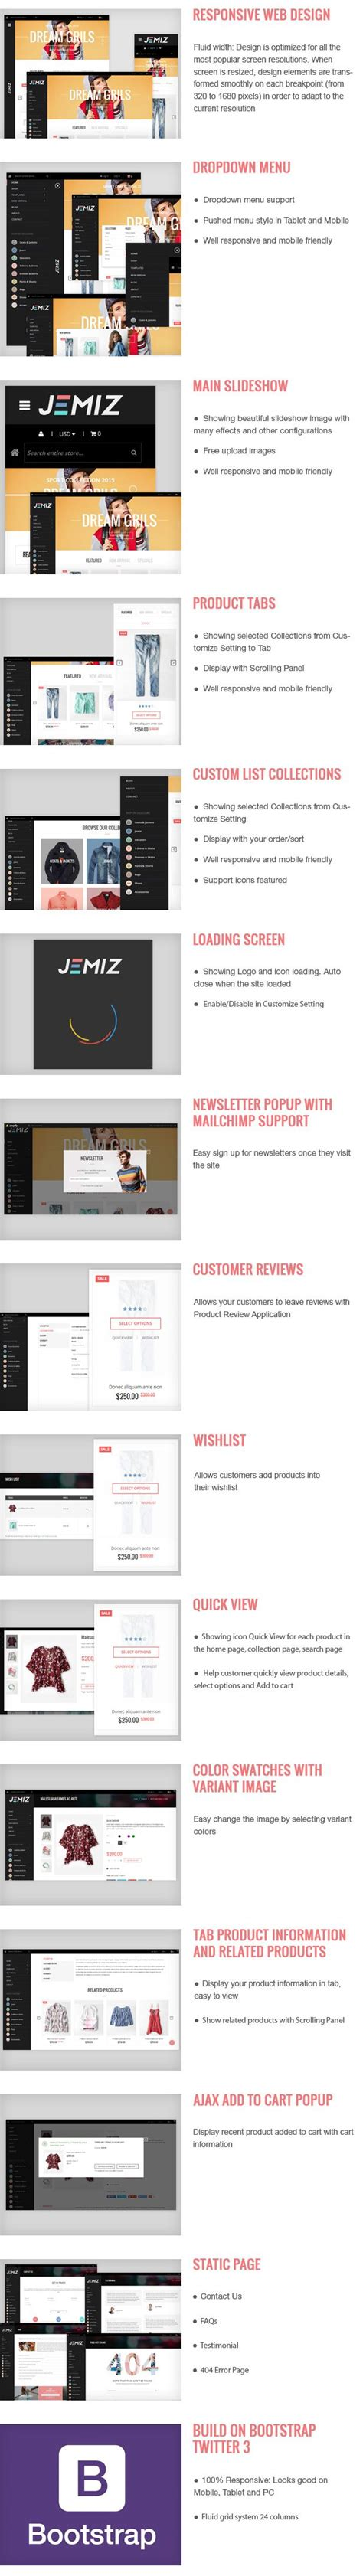 Html Email Creator Email Design Templates Shopify Email Templates Add Your Logo And Color Free Shopify Email Templates